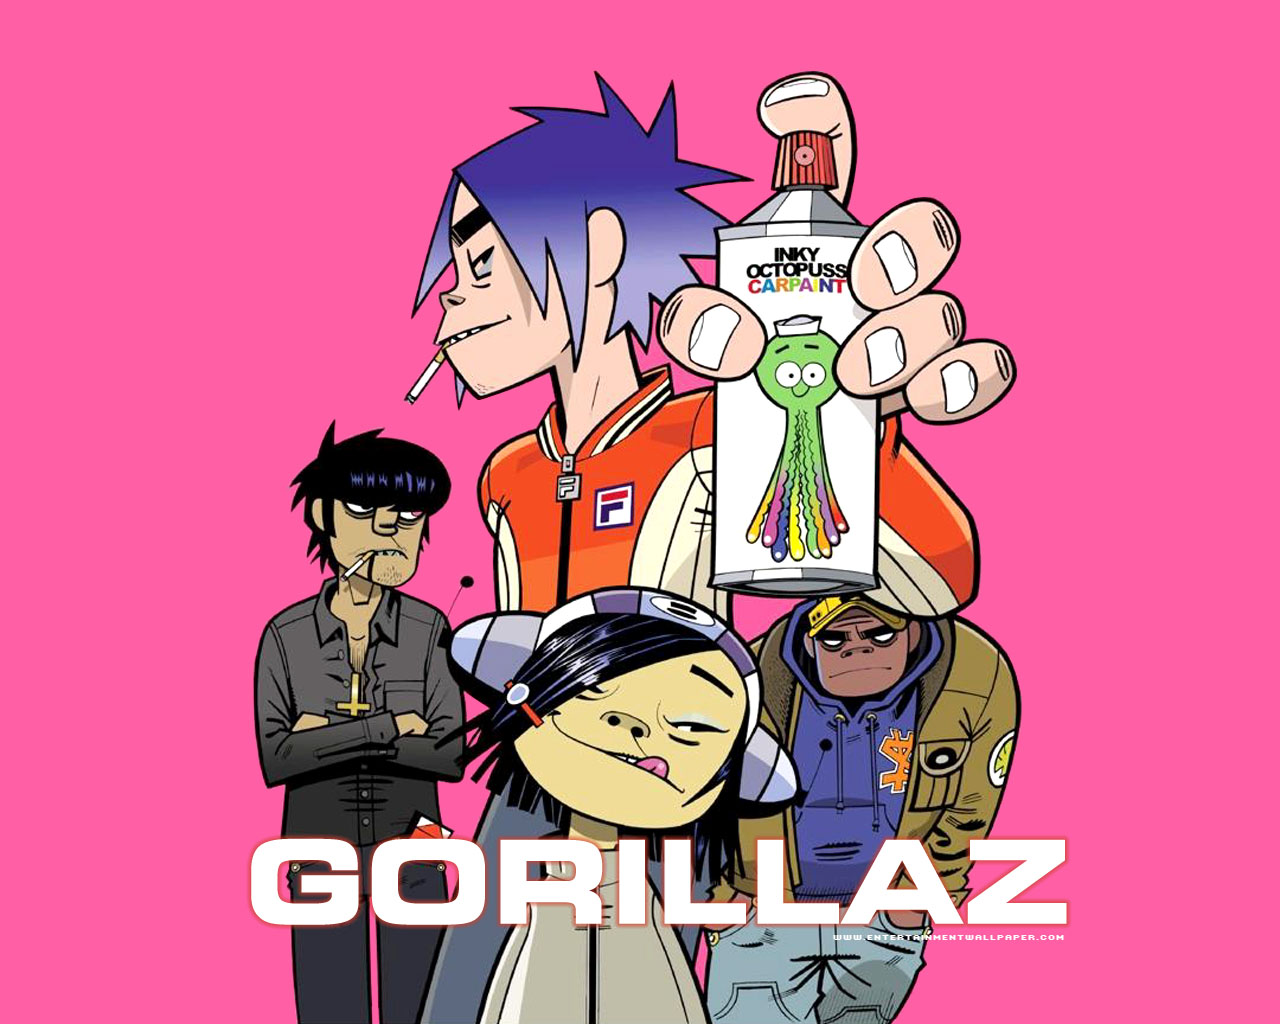 Gorillaz iphone wallpapers - Wallpaper To Change Your Desktop This Wallpaper Size Is Best Fit For 5